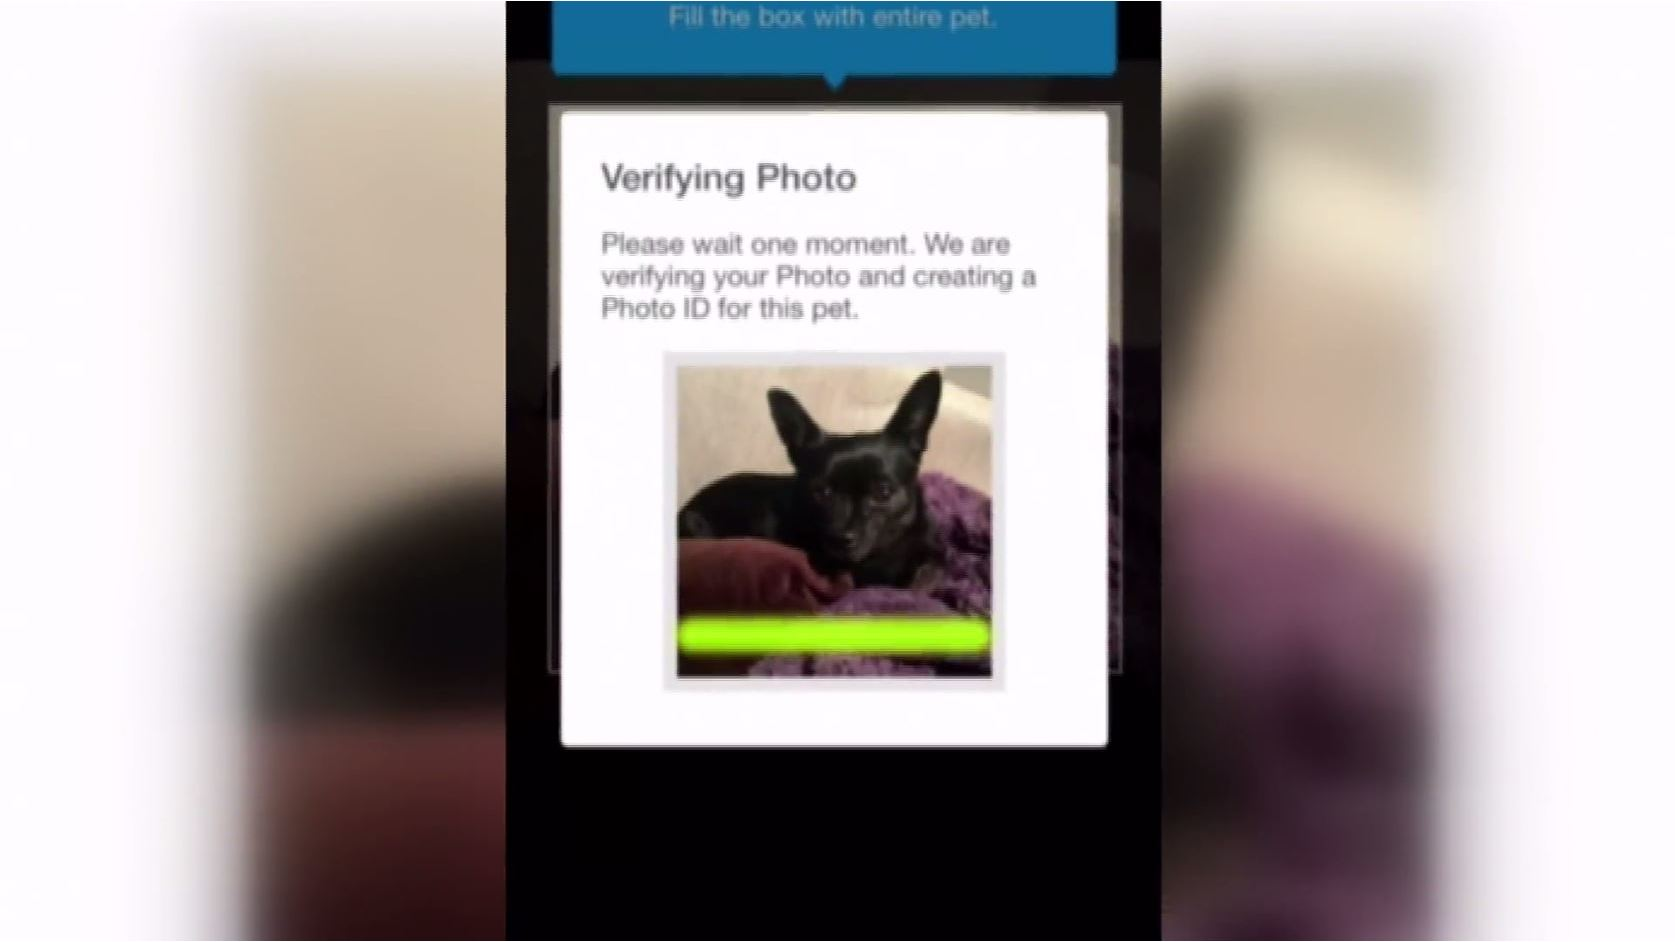 Pasco Animal Services reuniting pets with owners through facial recognition software